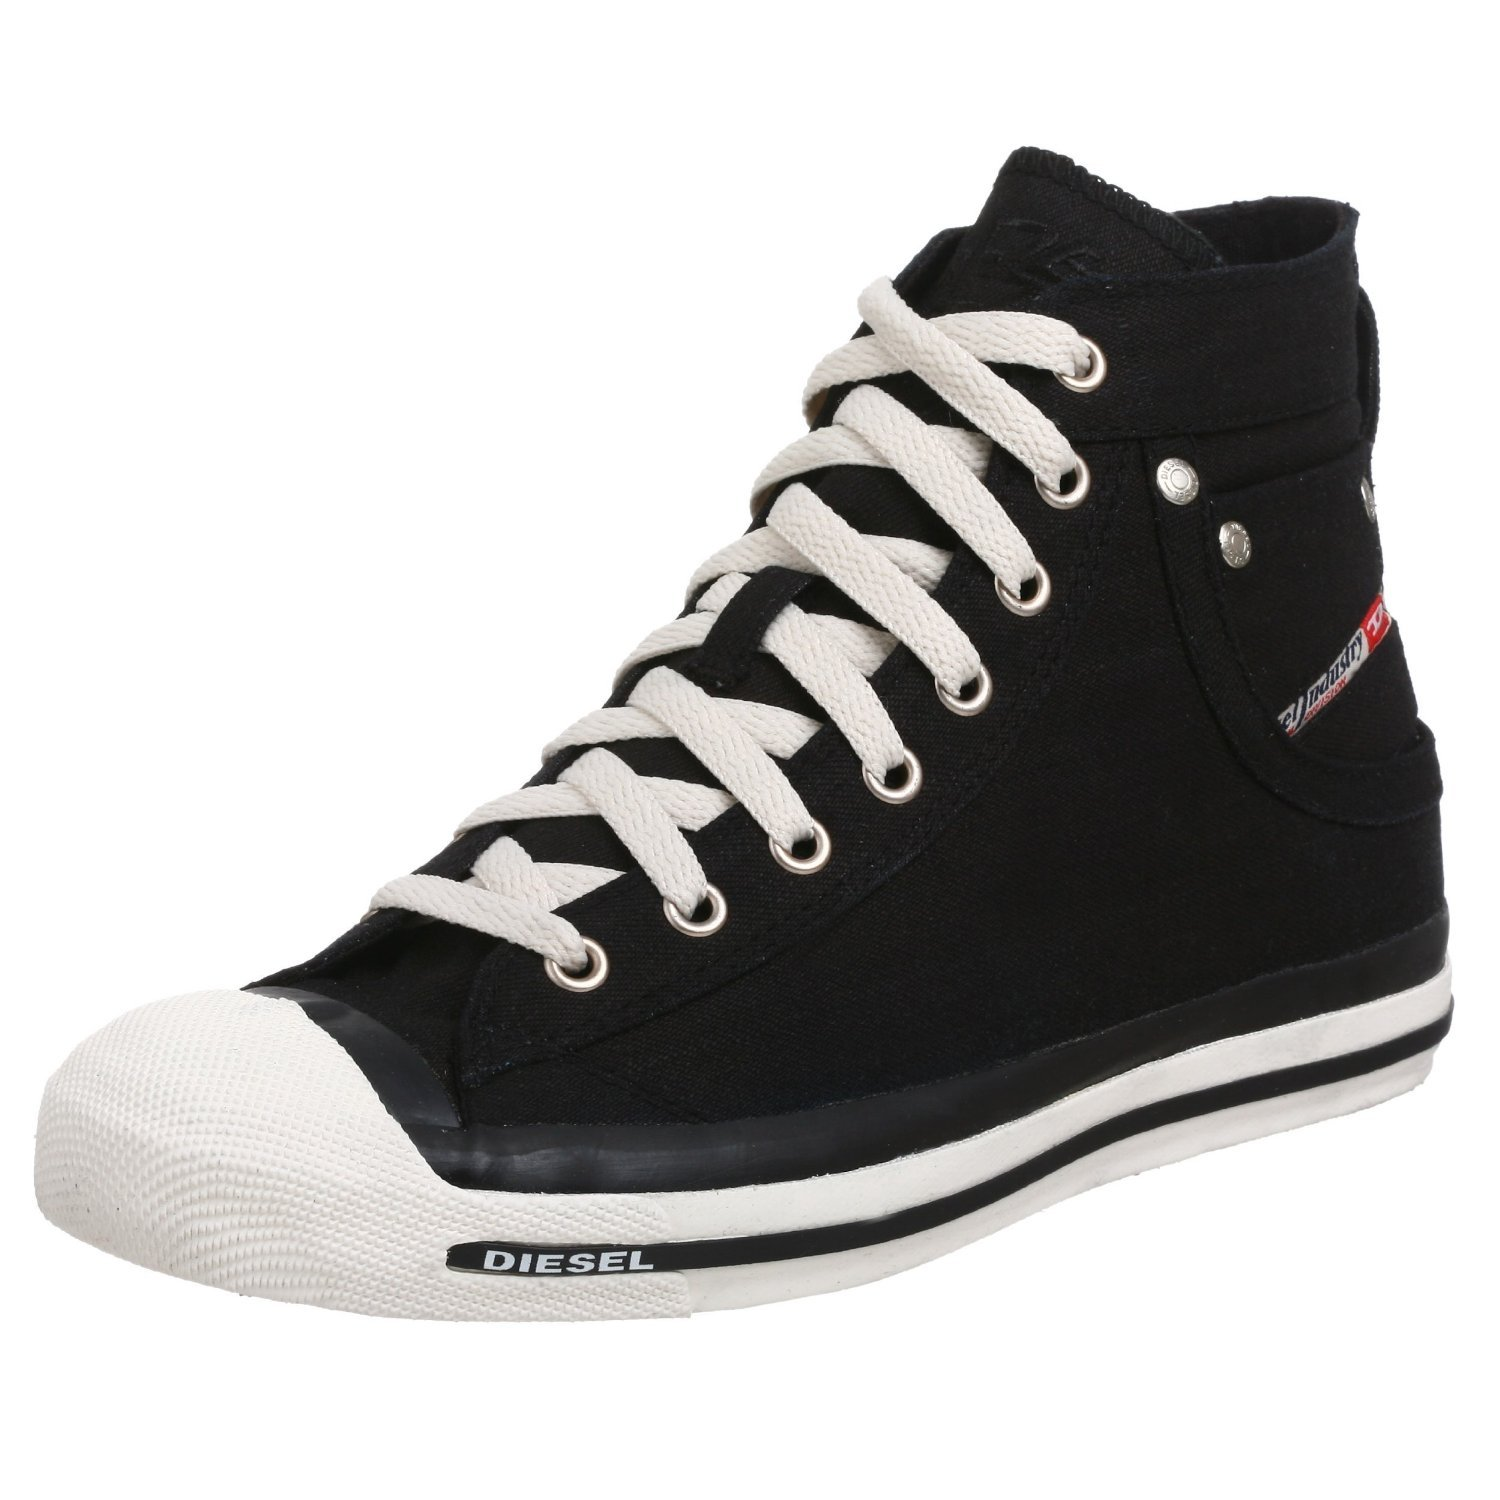 2fa23aa0d52 DIESEL Exposure Hi Black White Mens Canvas New Trainers Shoes Boots   Amazon.co.uk  Shoes   Bags